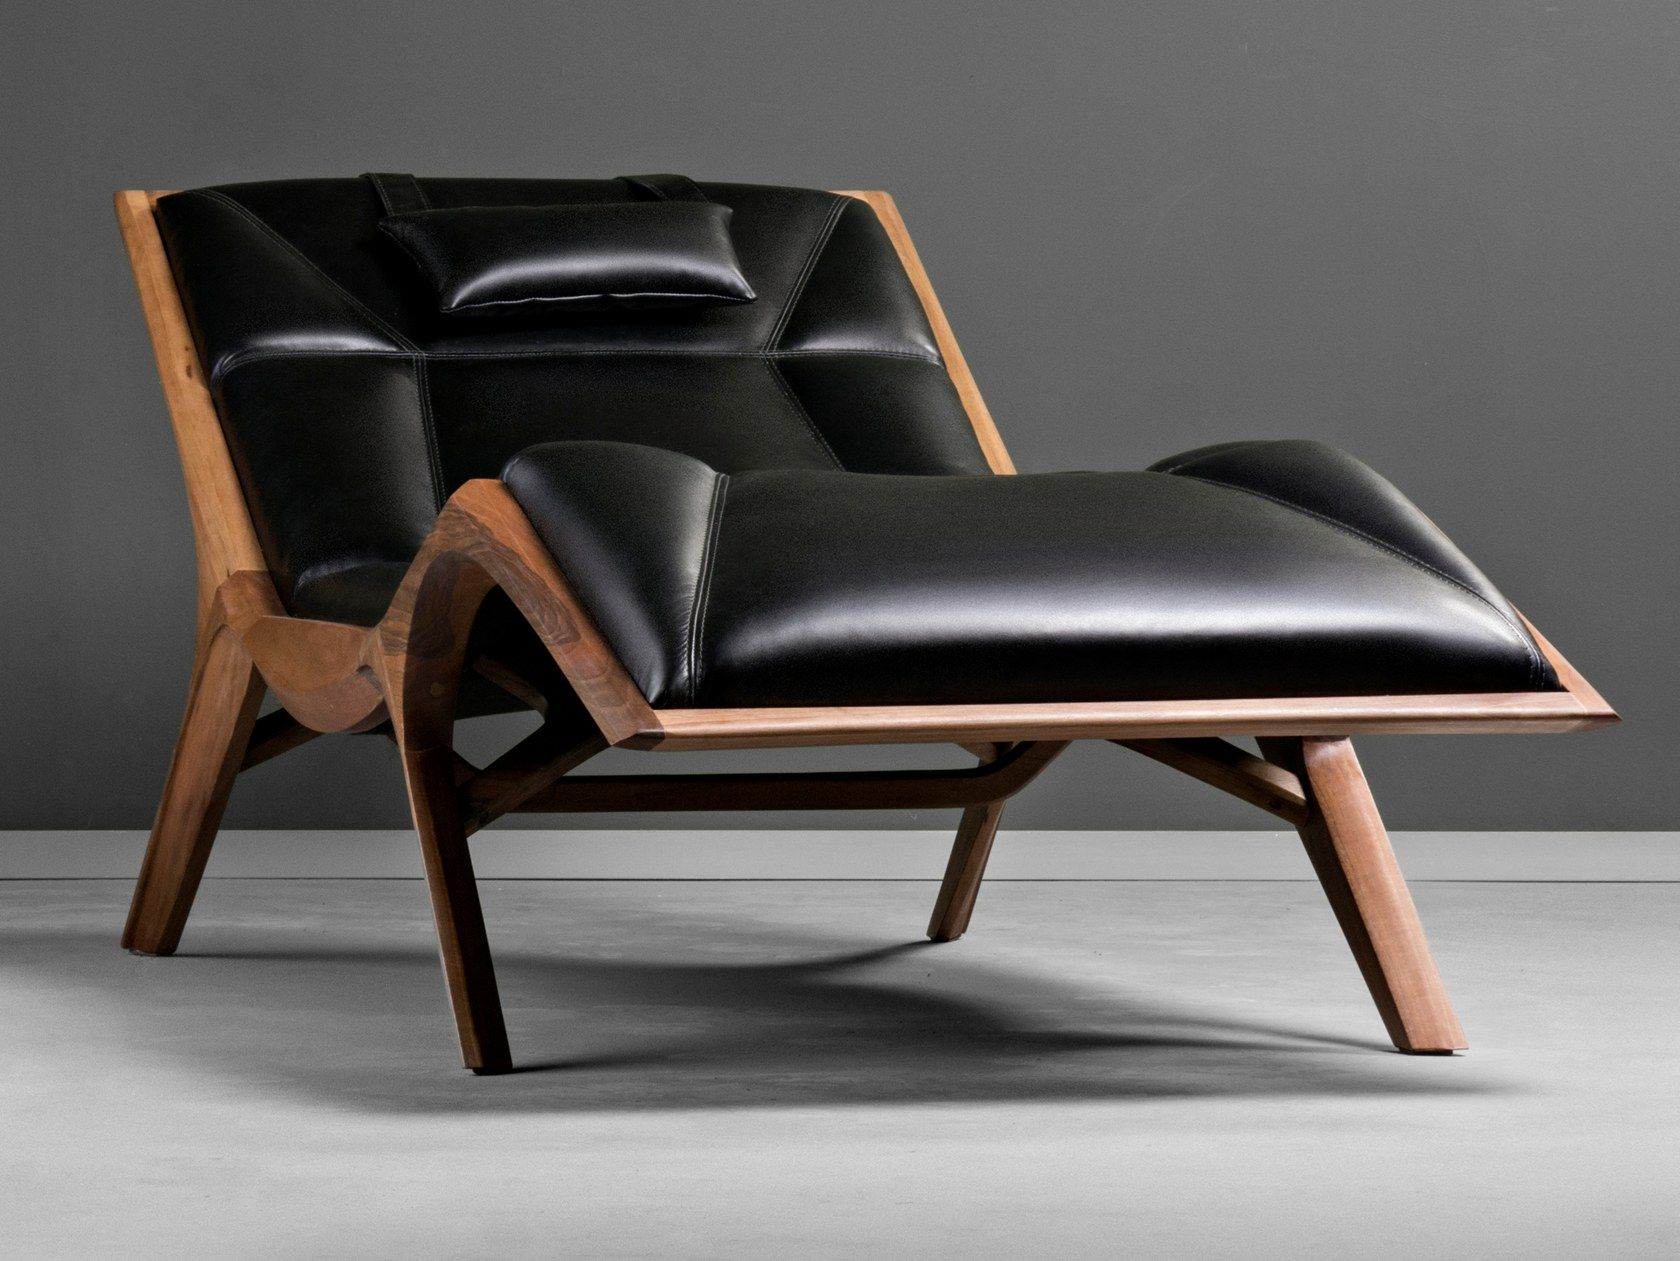 Upholstered Leather Chaise Longue Insekt By Hookl Und Stool Design Aleksandar Ugresic In 2020 Leather Chaise Luxury Couch Leather Furniture